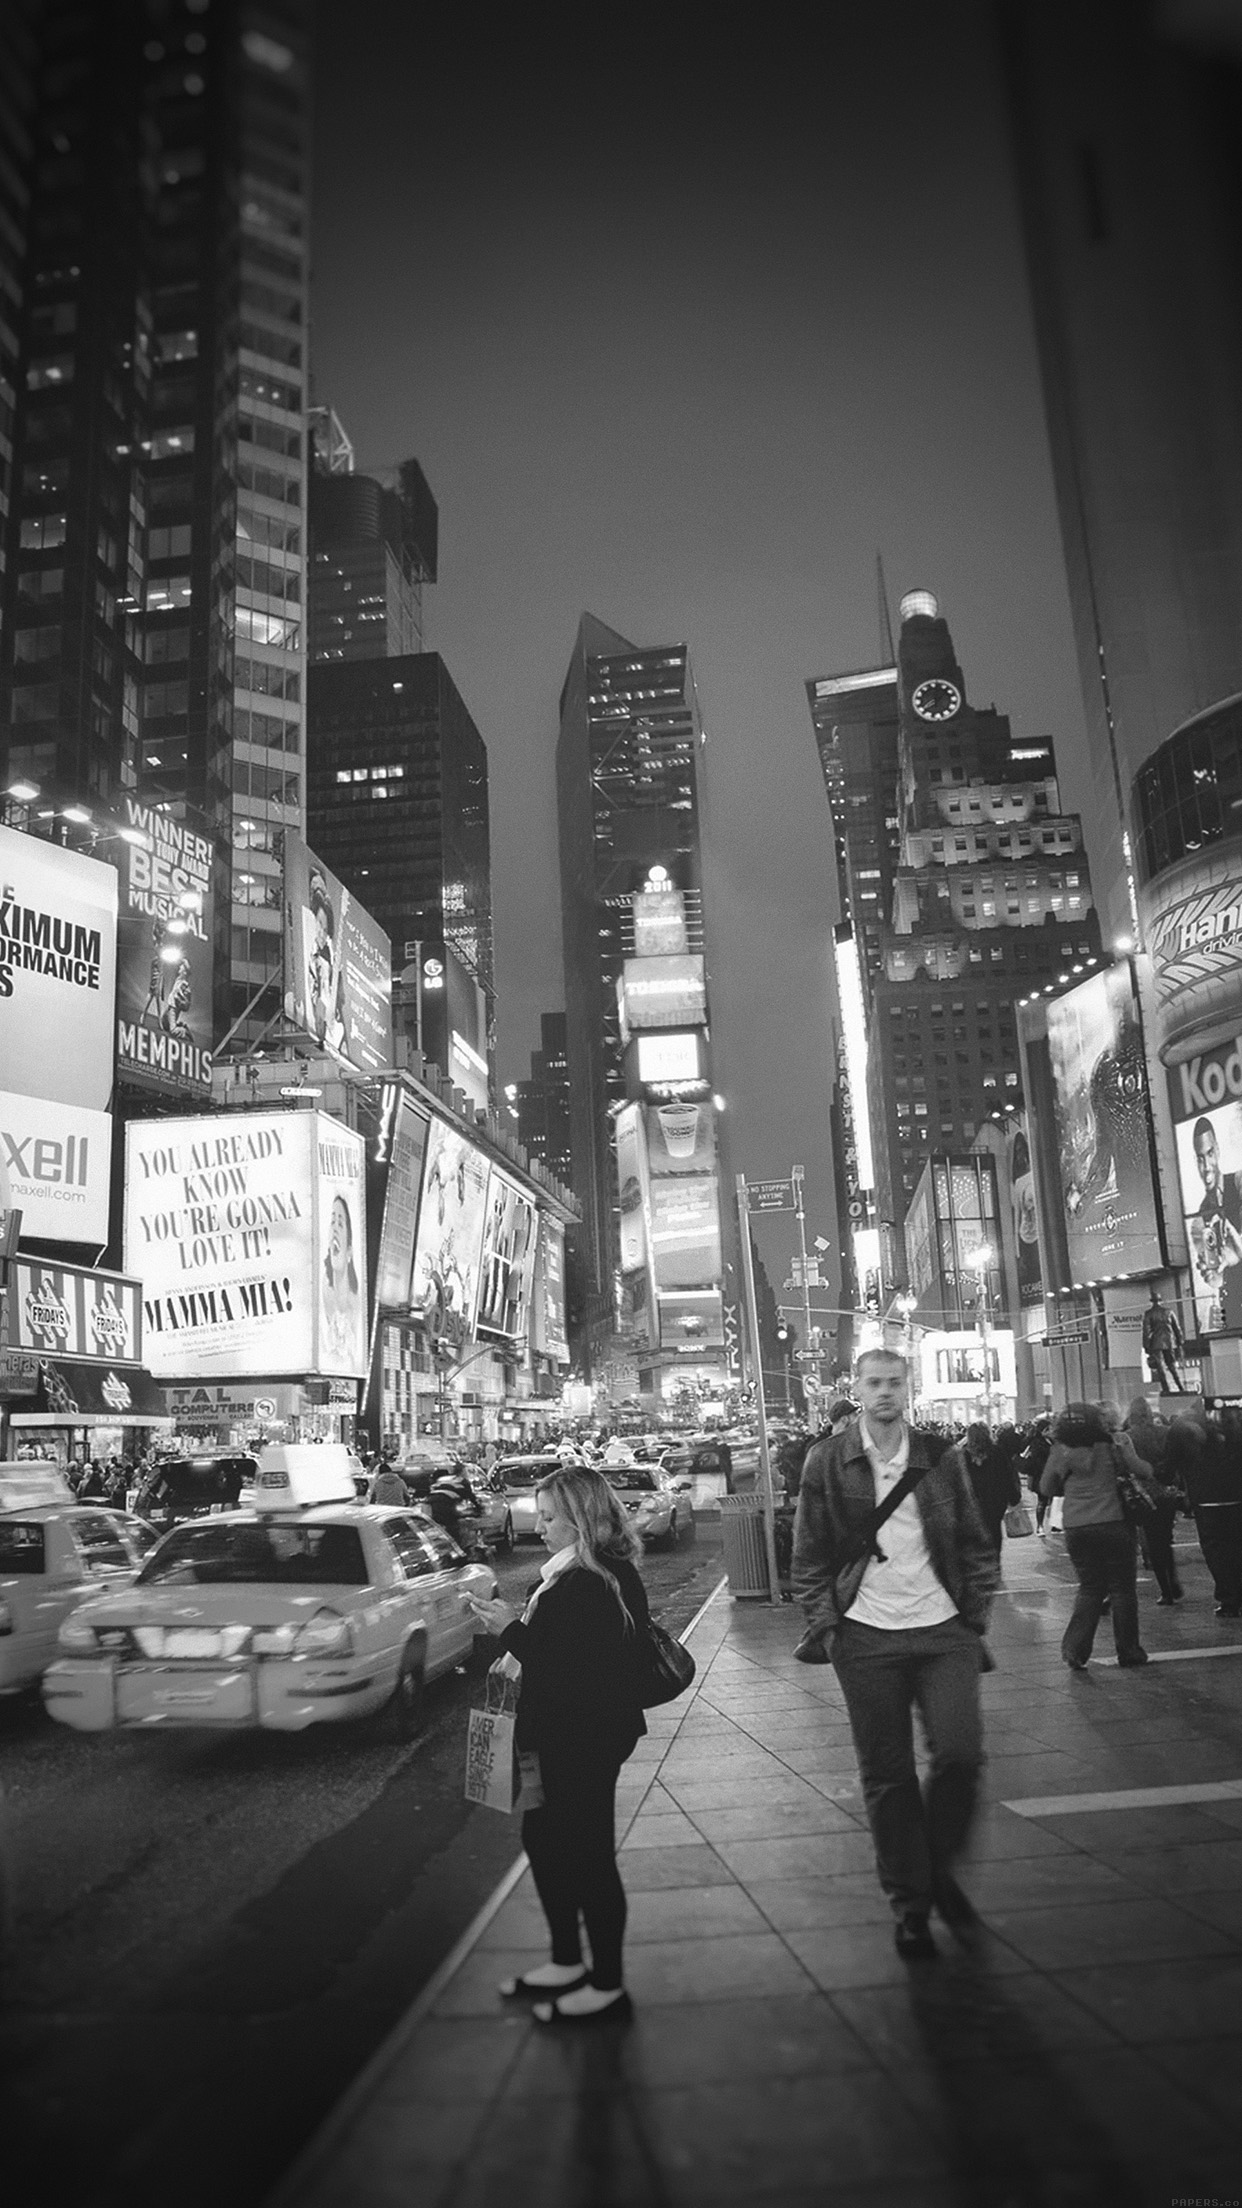 Times Square Iphone 6 Wallpaper Wallpapers Of The Week Urban Sprawl